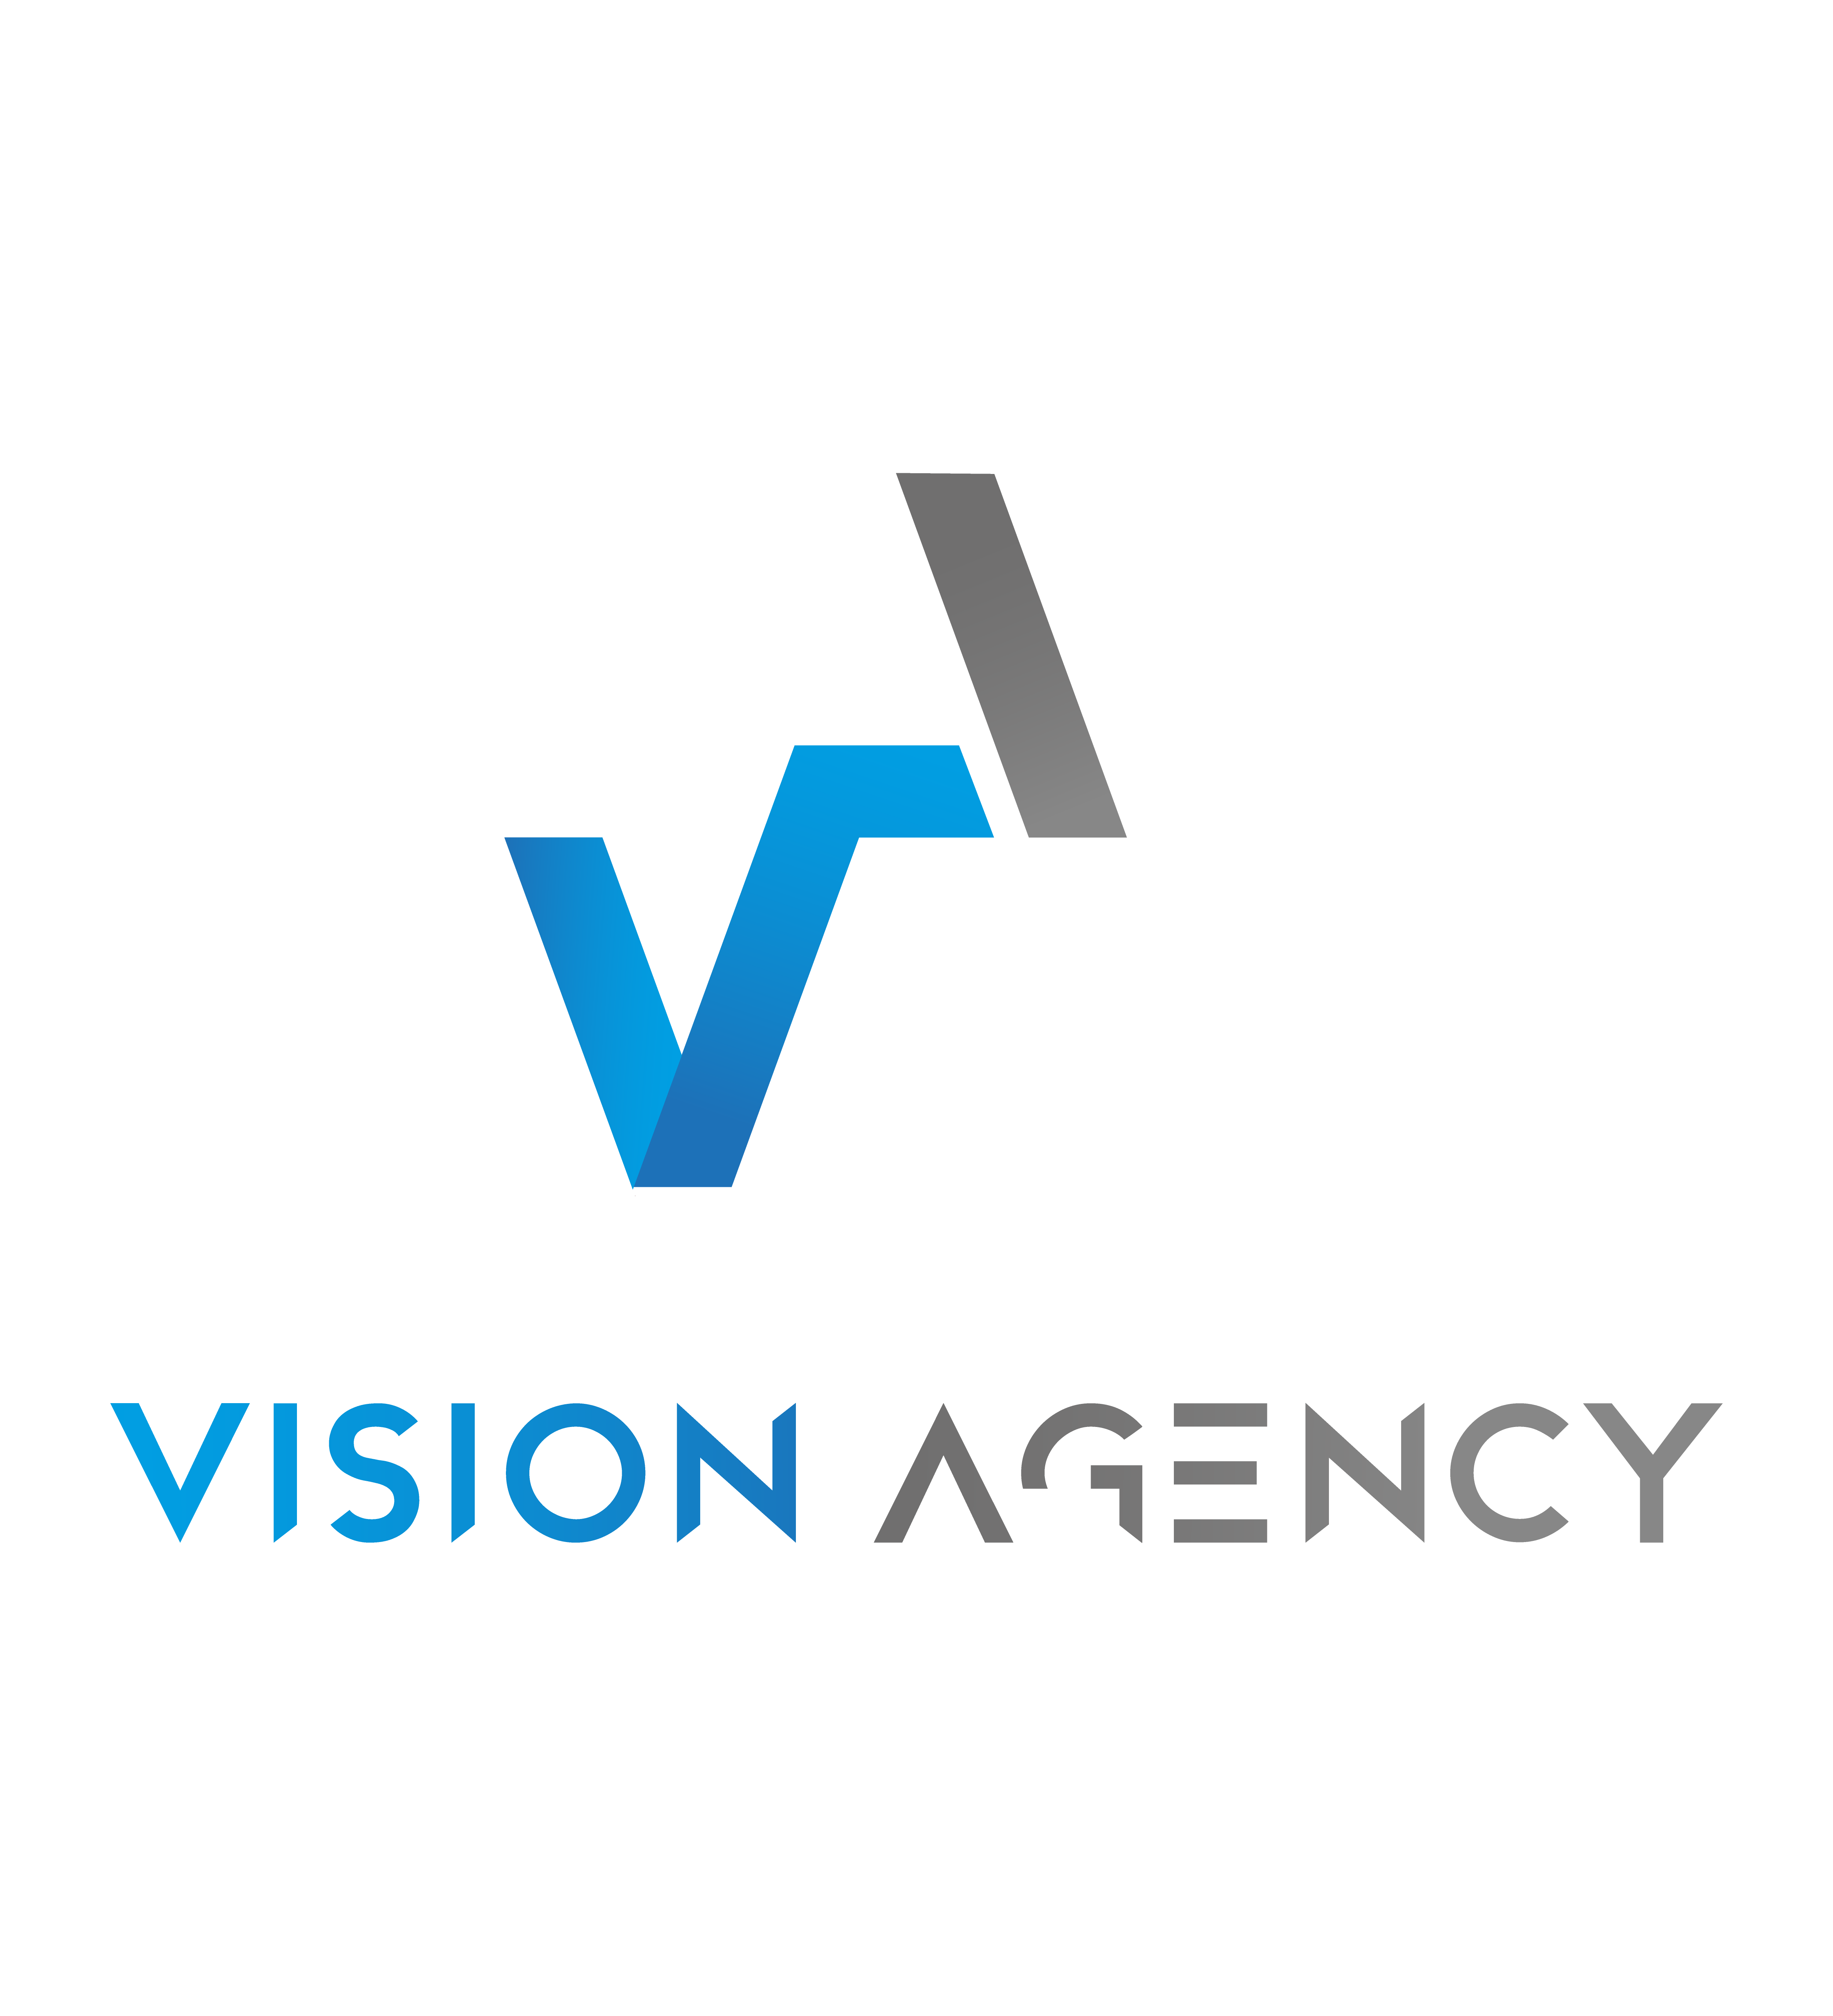 Vision Agency